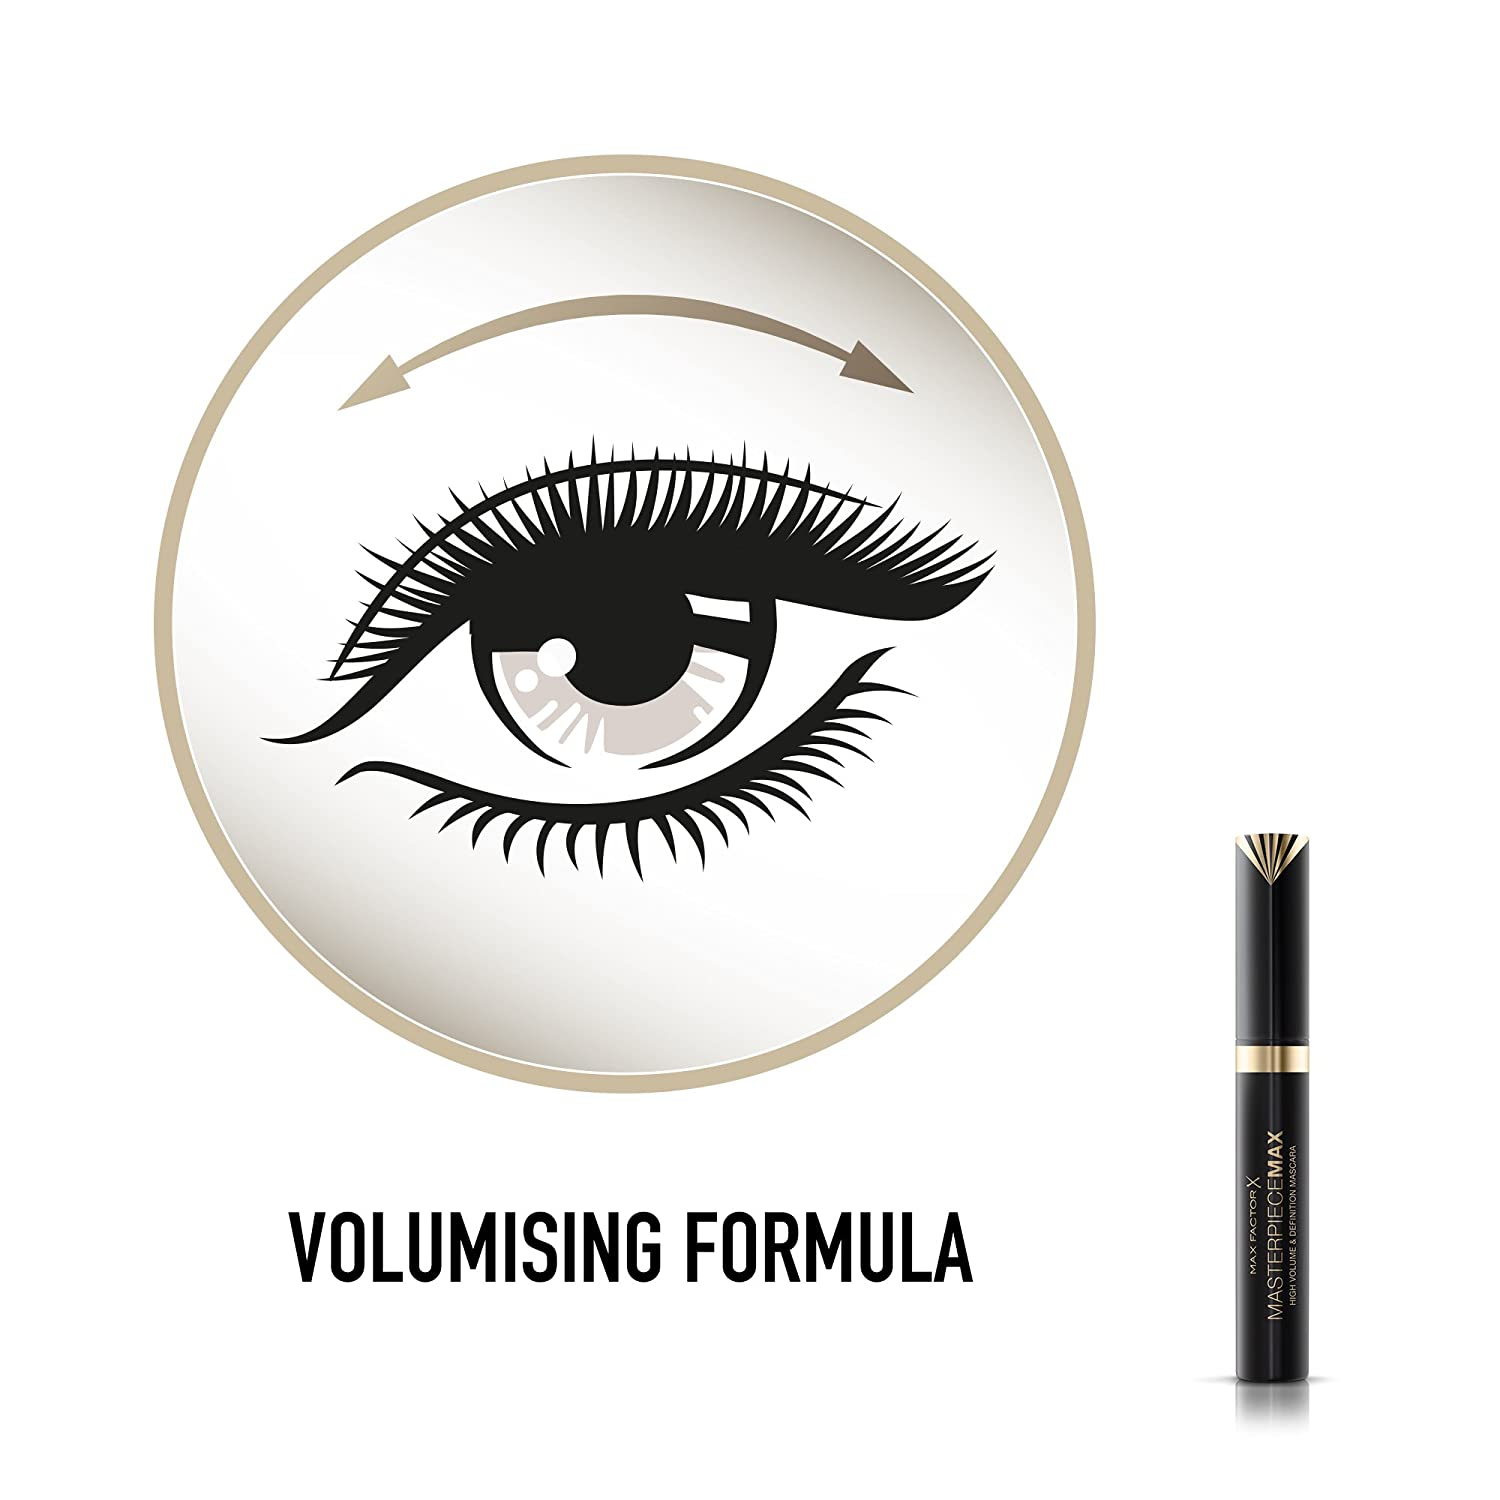 6e003257dab Max Factor Masterpiece Max High Volume and Definition Mascara, Volume  Boosting Formula for Eye-opening Effect, 001 Black, 7.2 ml: Amazon.co.uk:  Beauty